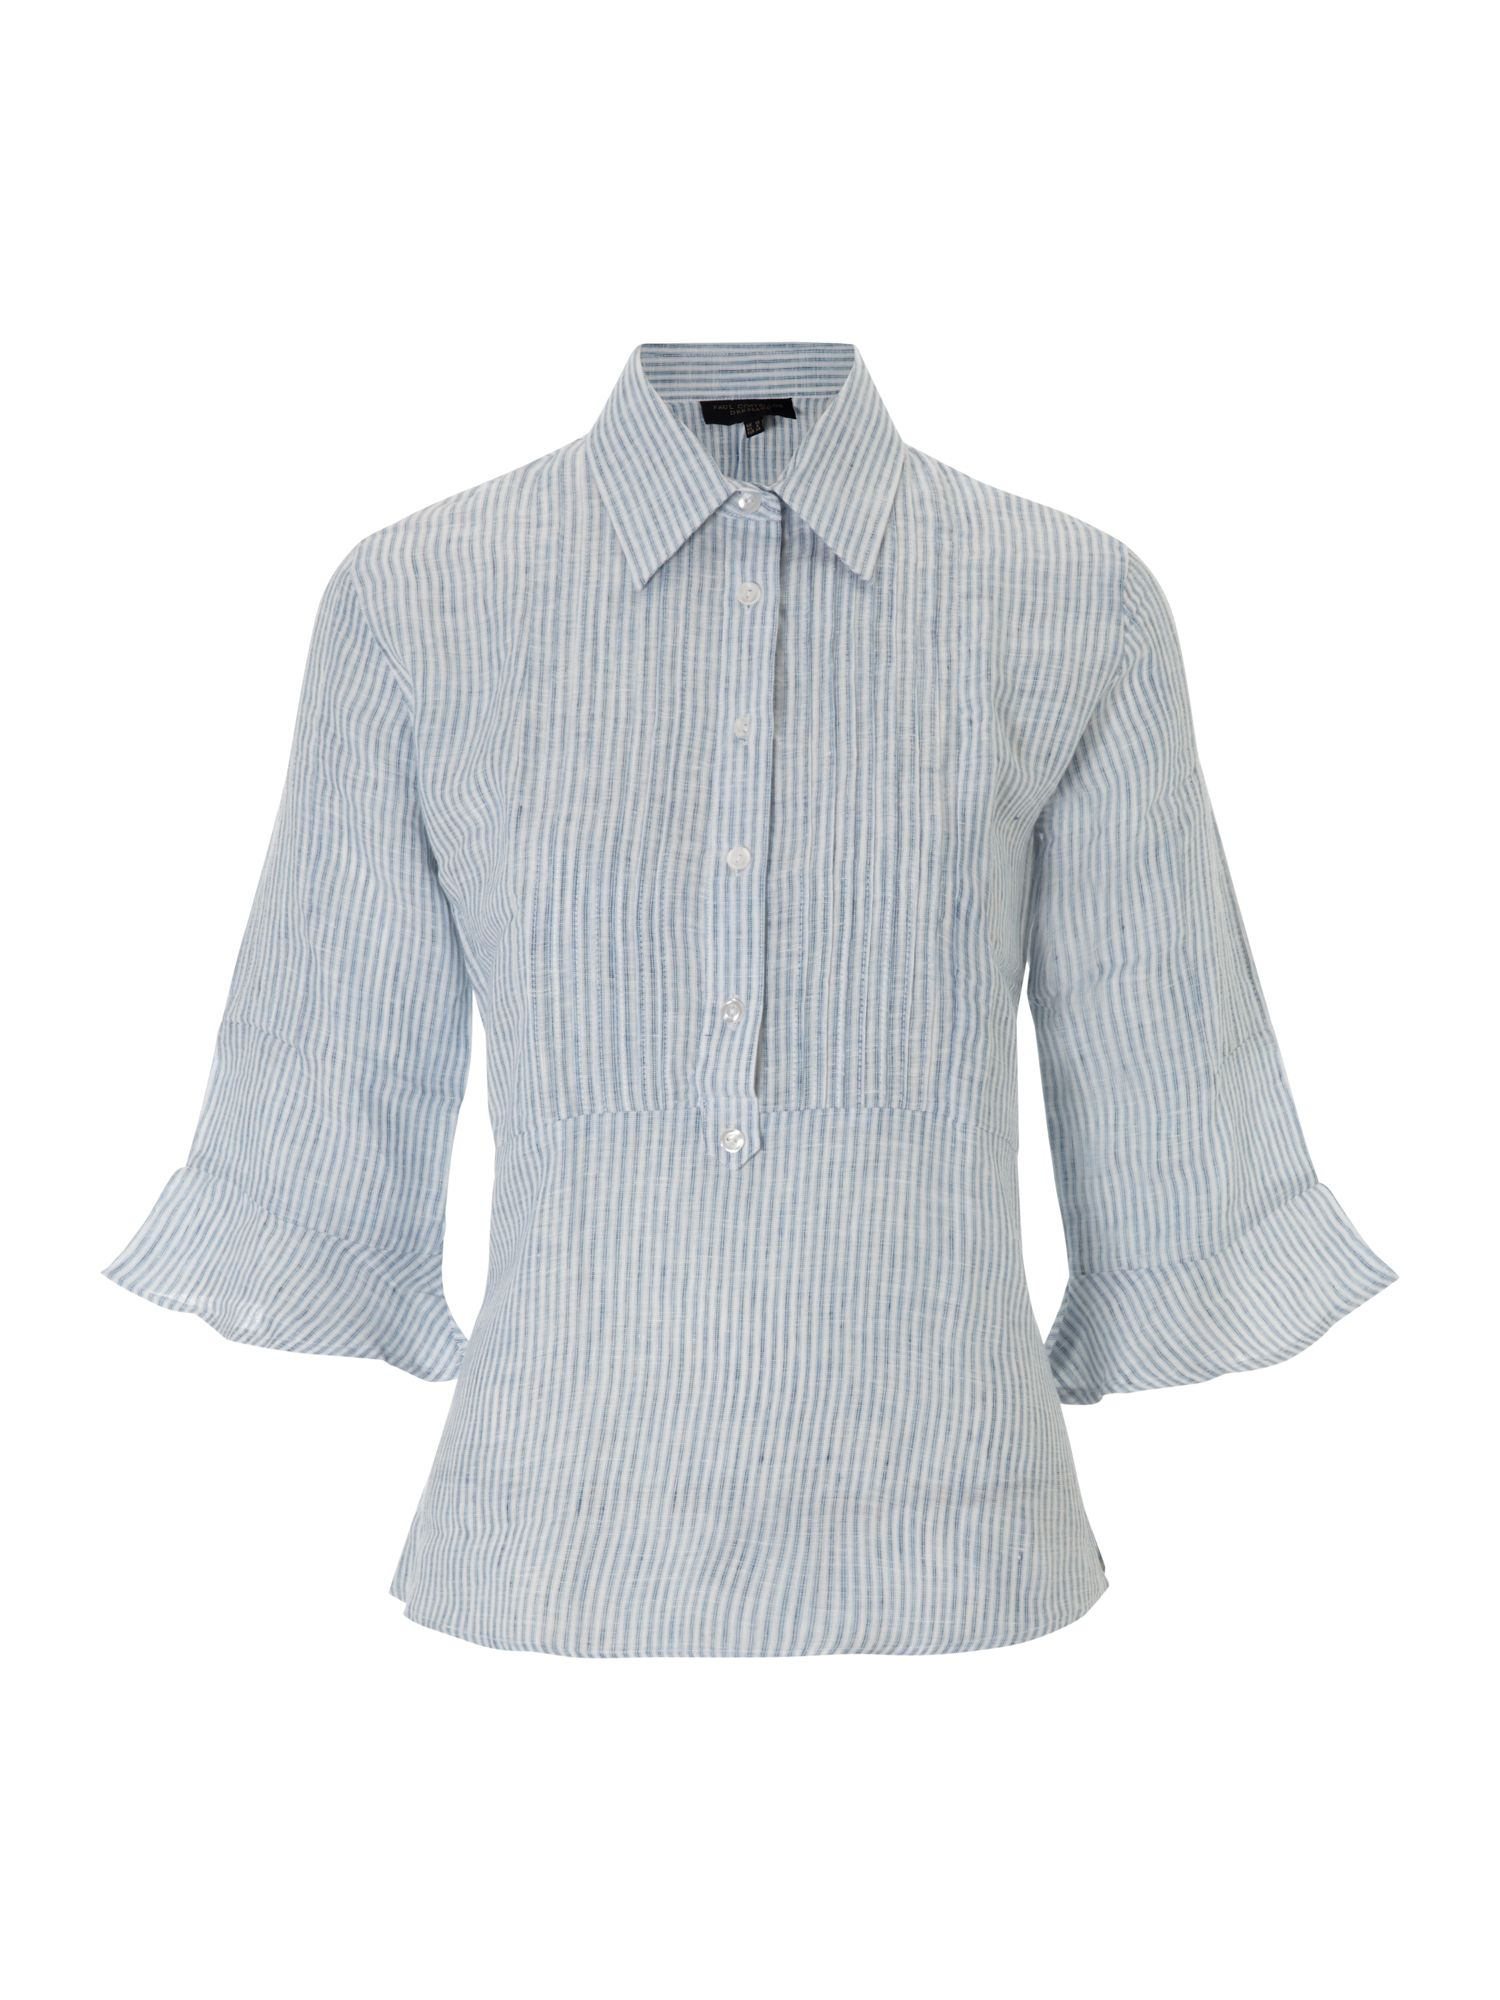 Paul Costelloe Striped linen blouse - Petrol 10,10,8,8,14,14 product image